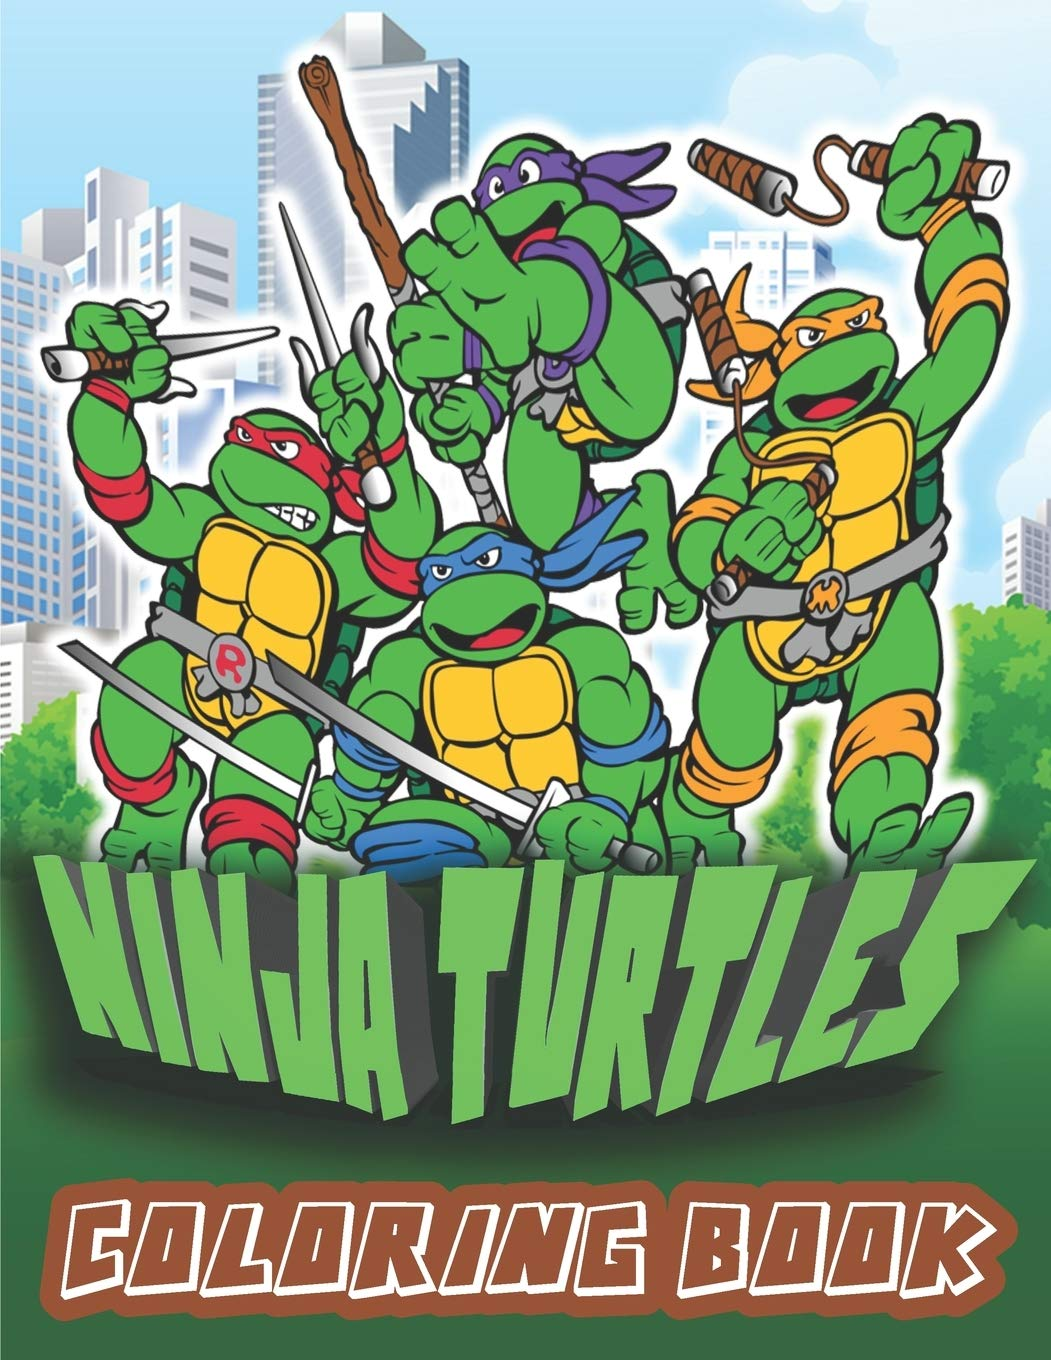 Ninja Turtles Coloring Book Amazing Coloring Pages With Relaxing Ninja Turtles Coloring Book With Beautiful Glossy Cover French Edition Creative Gold Book 9798652088750 Amazon Com Books